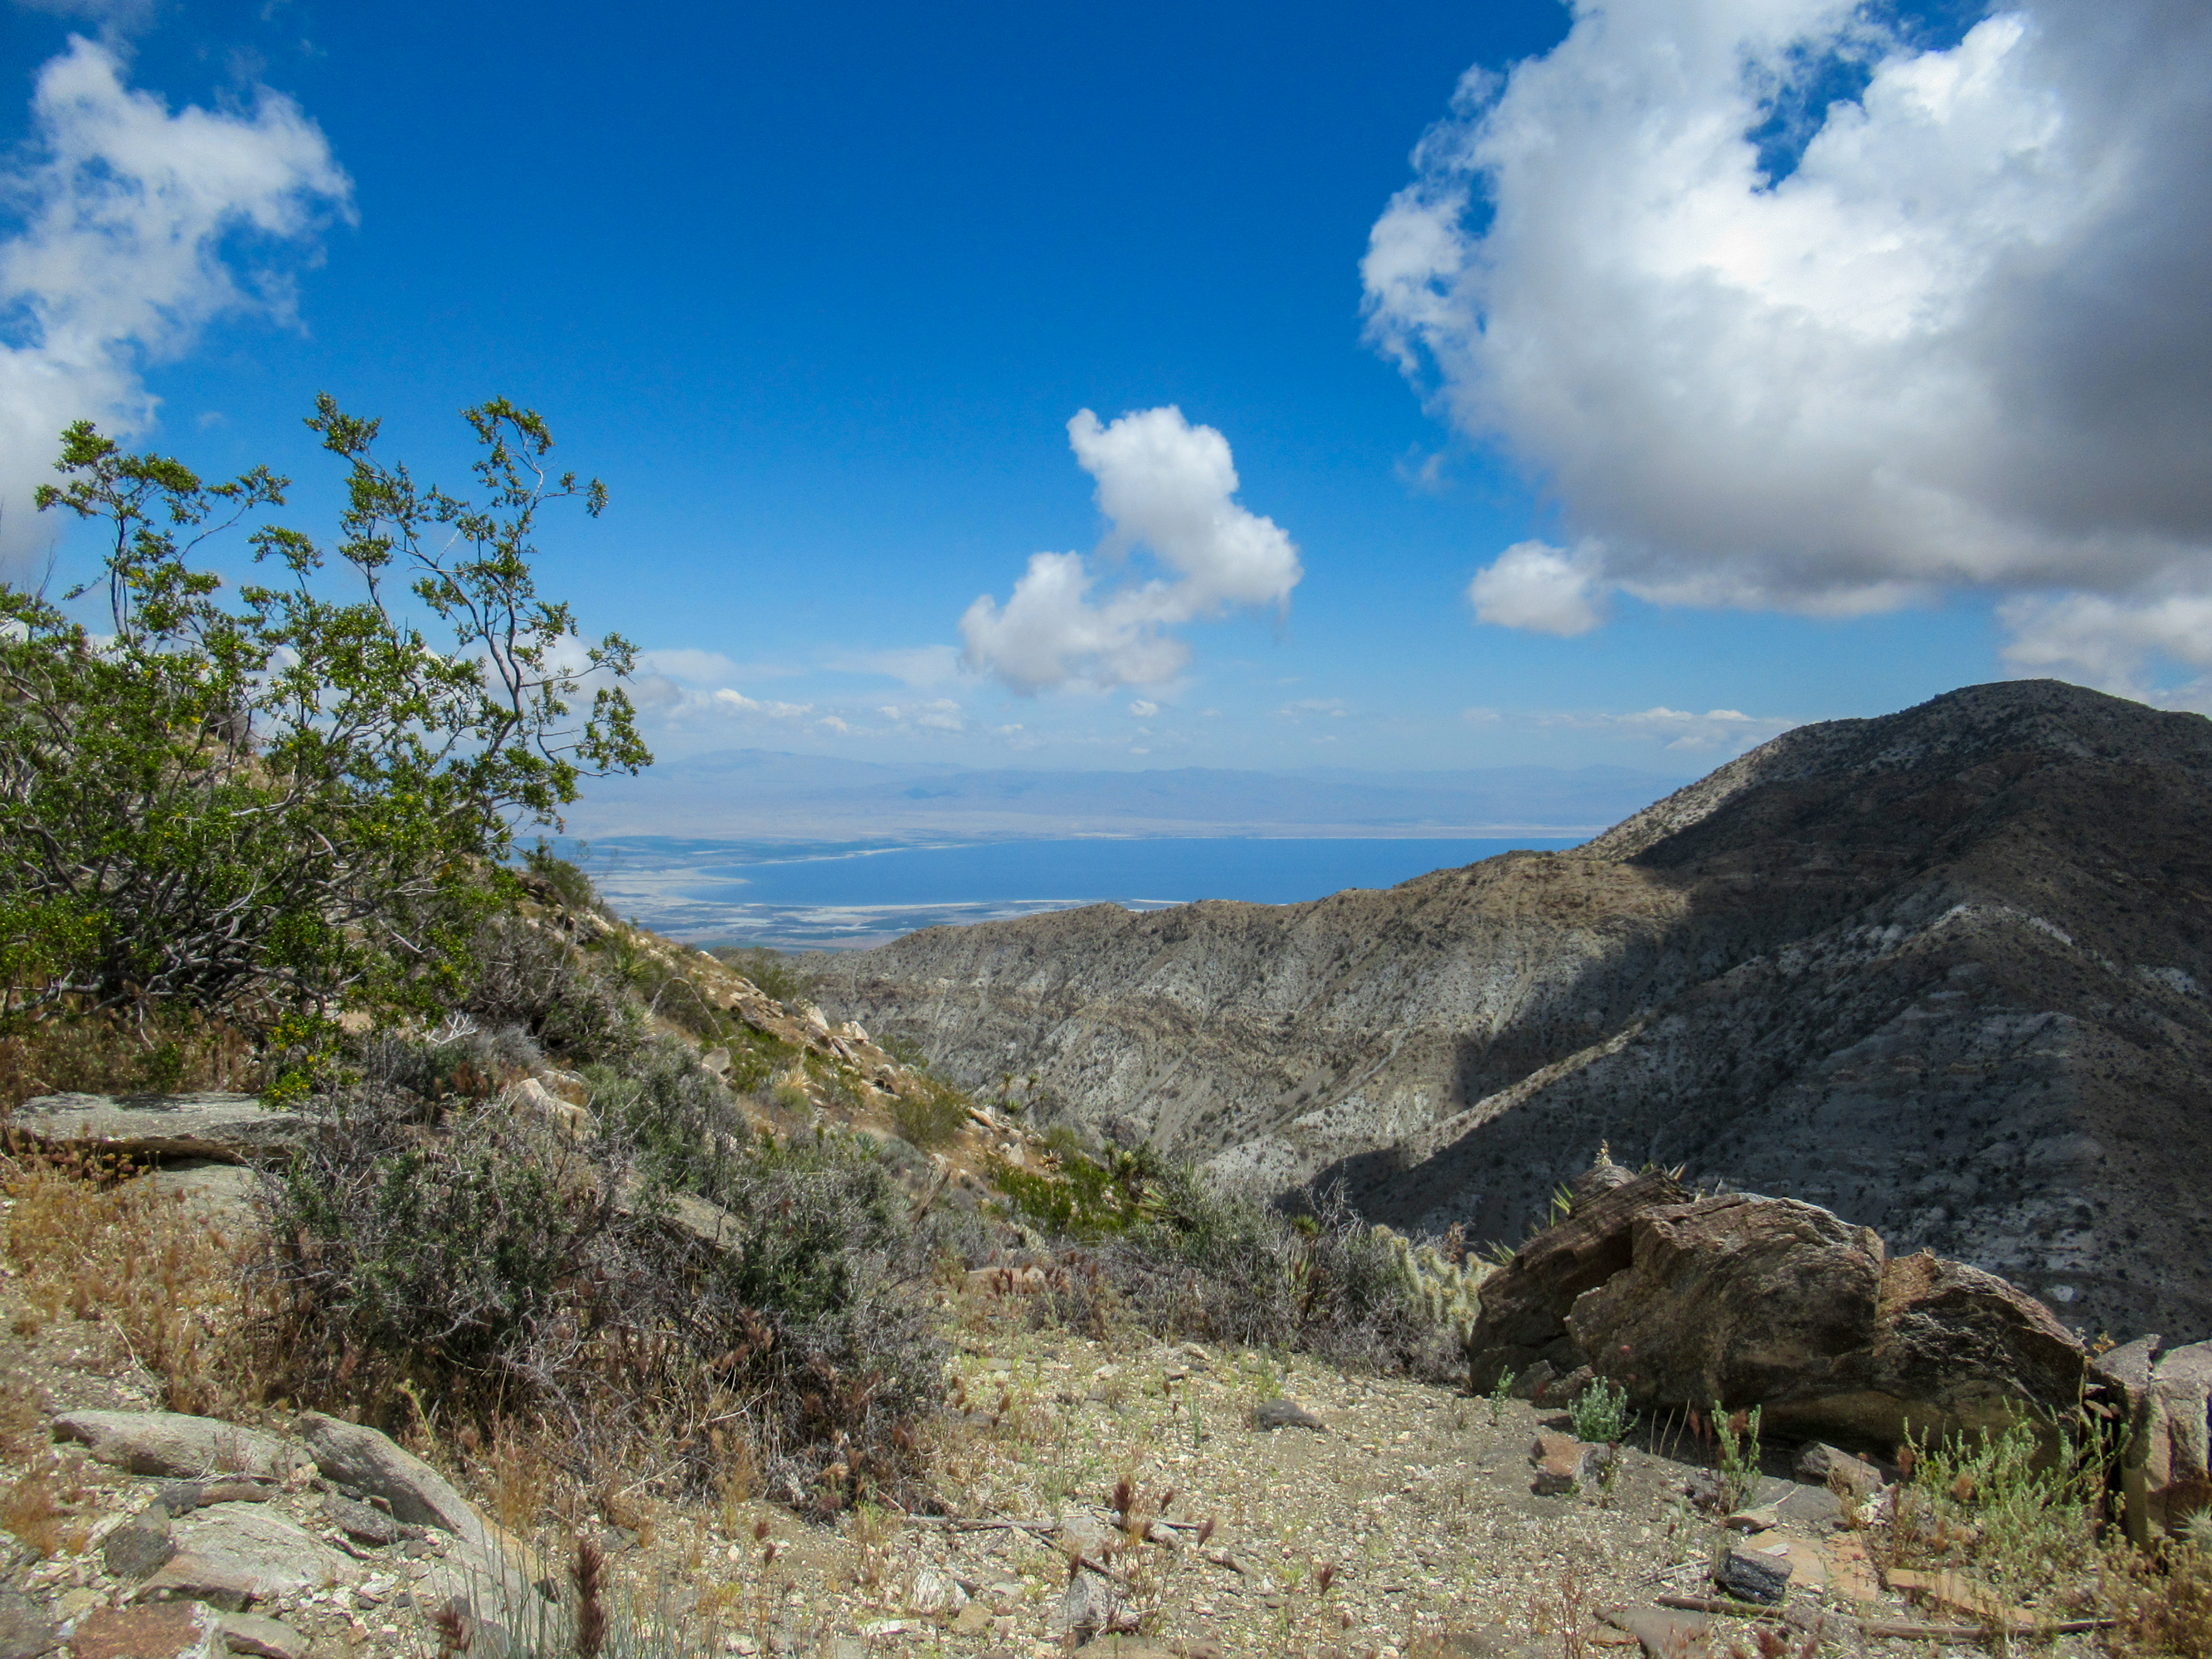 Views of the Salton Sea and Mile High Mountain.